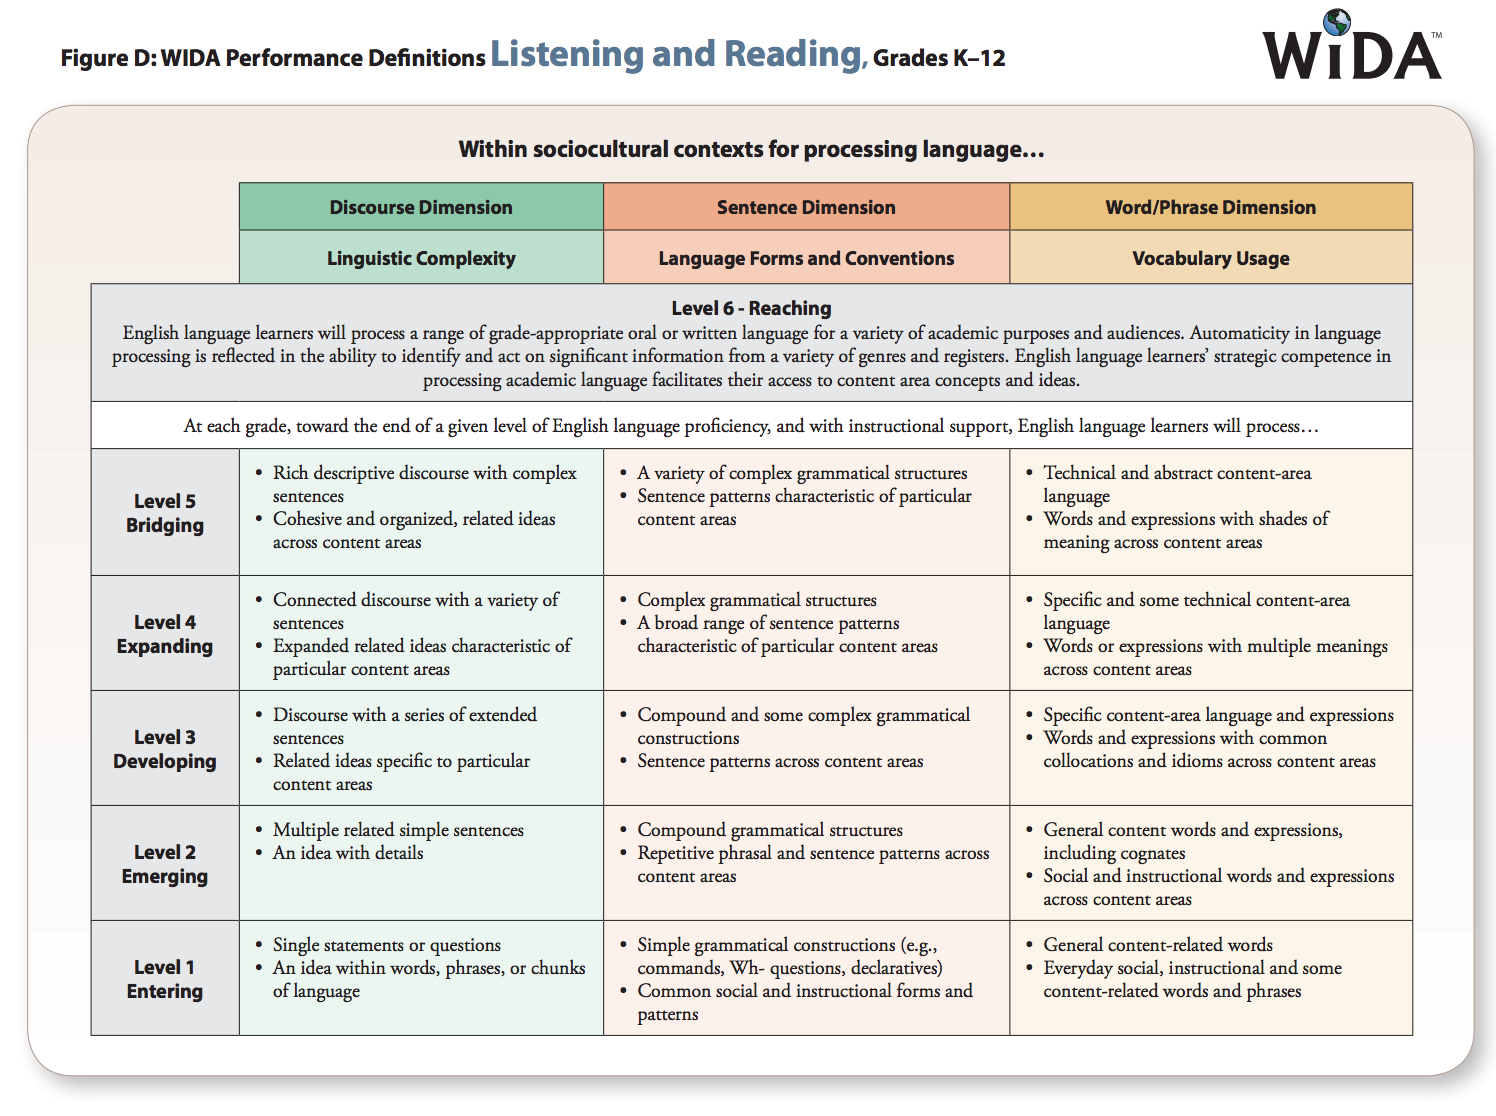 screenshot of WIDA Performance Definitions for Listening and Reading, page 6. https://wida.wisc.edu/sites/default/files/resource/2012-ELD-Standards.pdf